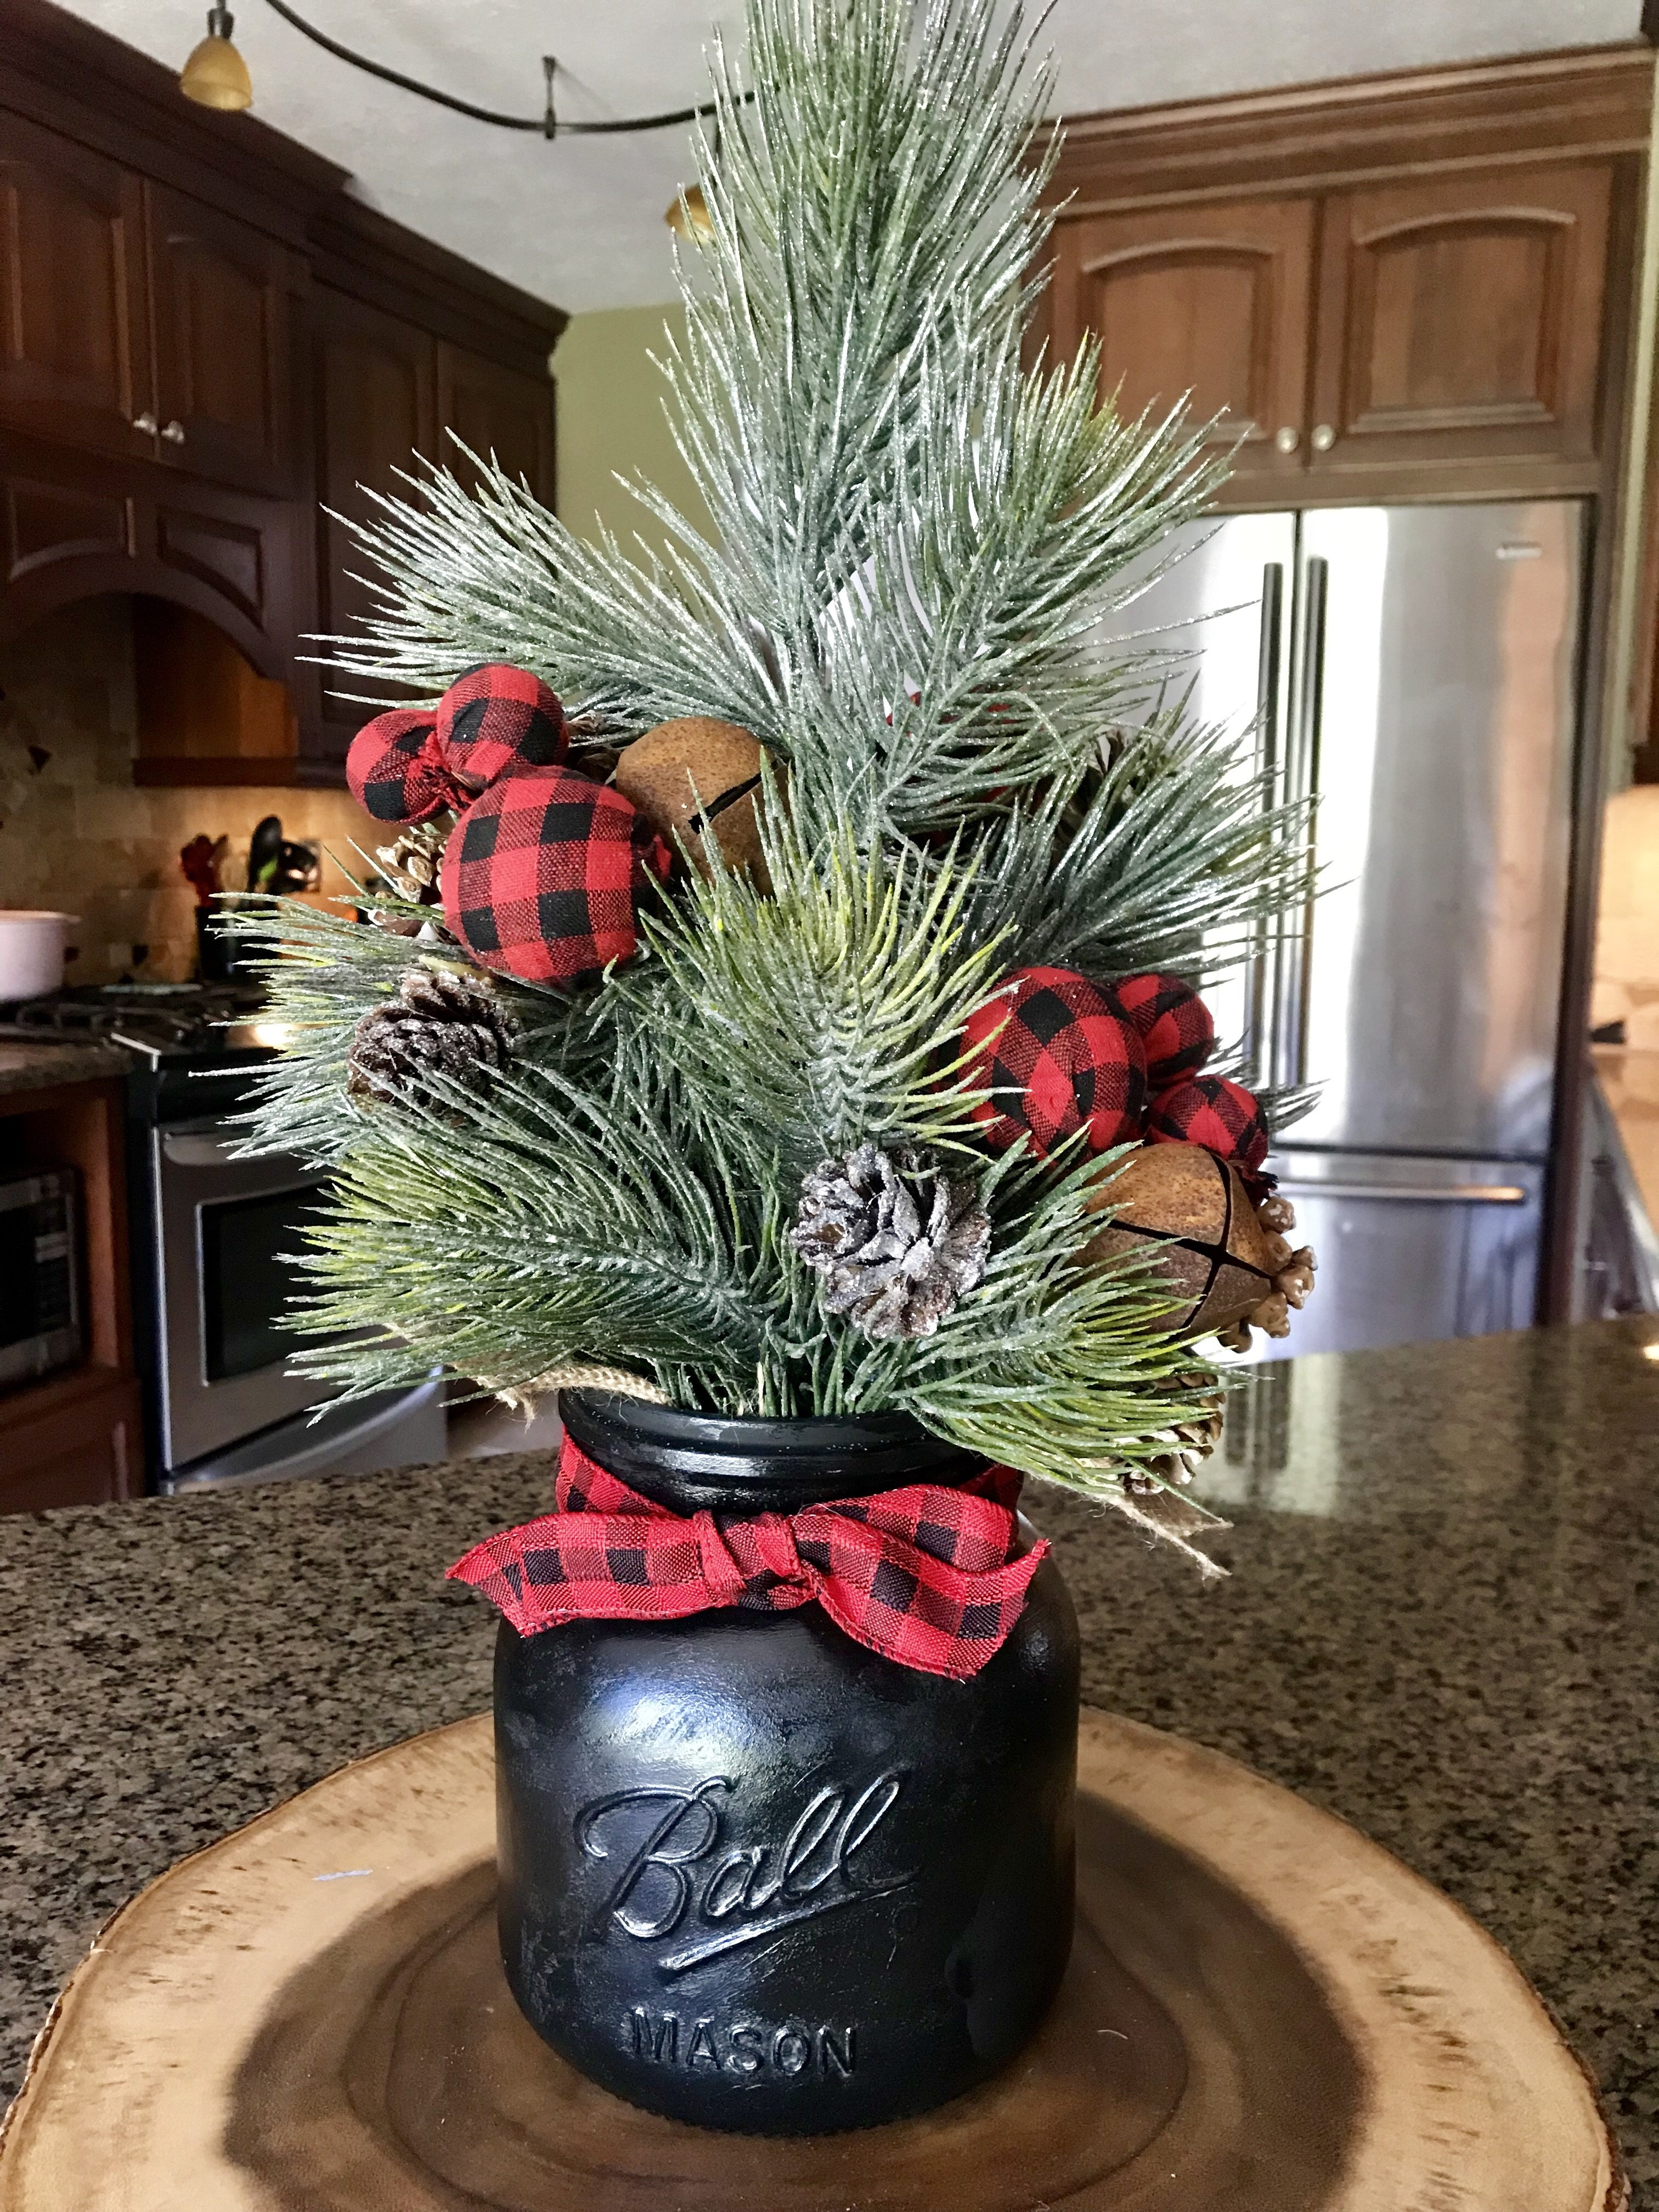 20 Stunning Buffalo Christmas Decor Ideas Celebrating The